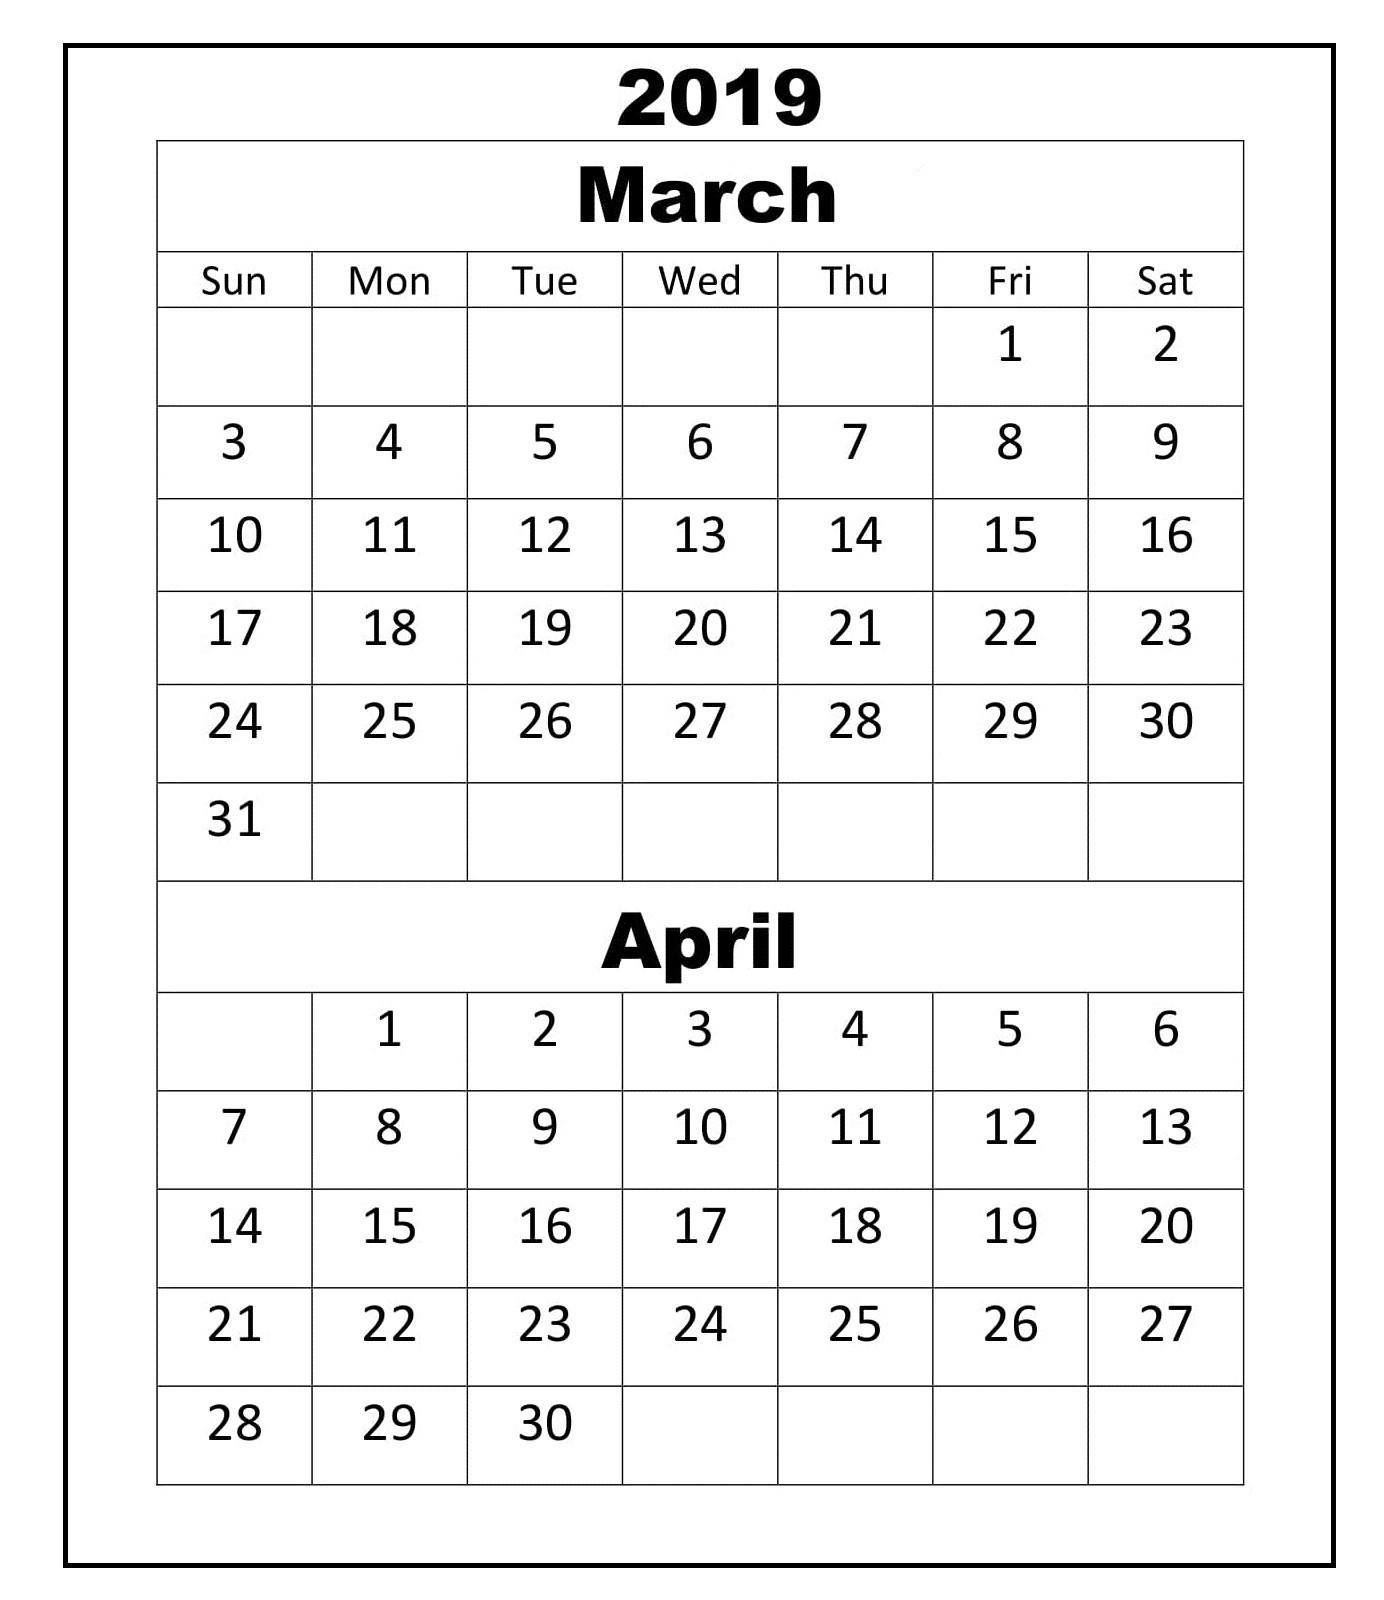 March Calendar 2019 Actual March April 2019 Calendar Printable Printables Calendars 2019 and Of March Calendar 2019 Más Recientes March 2019 Wall Calendar Colorful Sketch Horizontal Template Letter